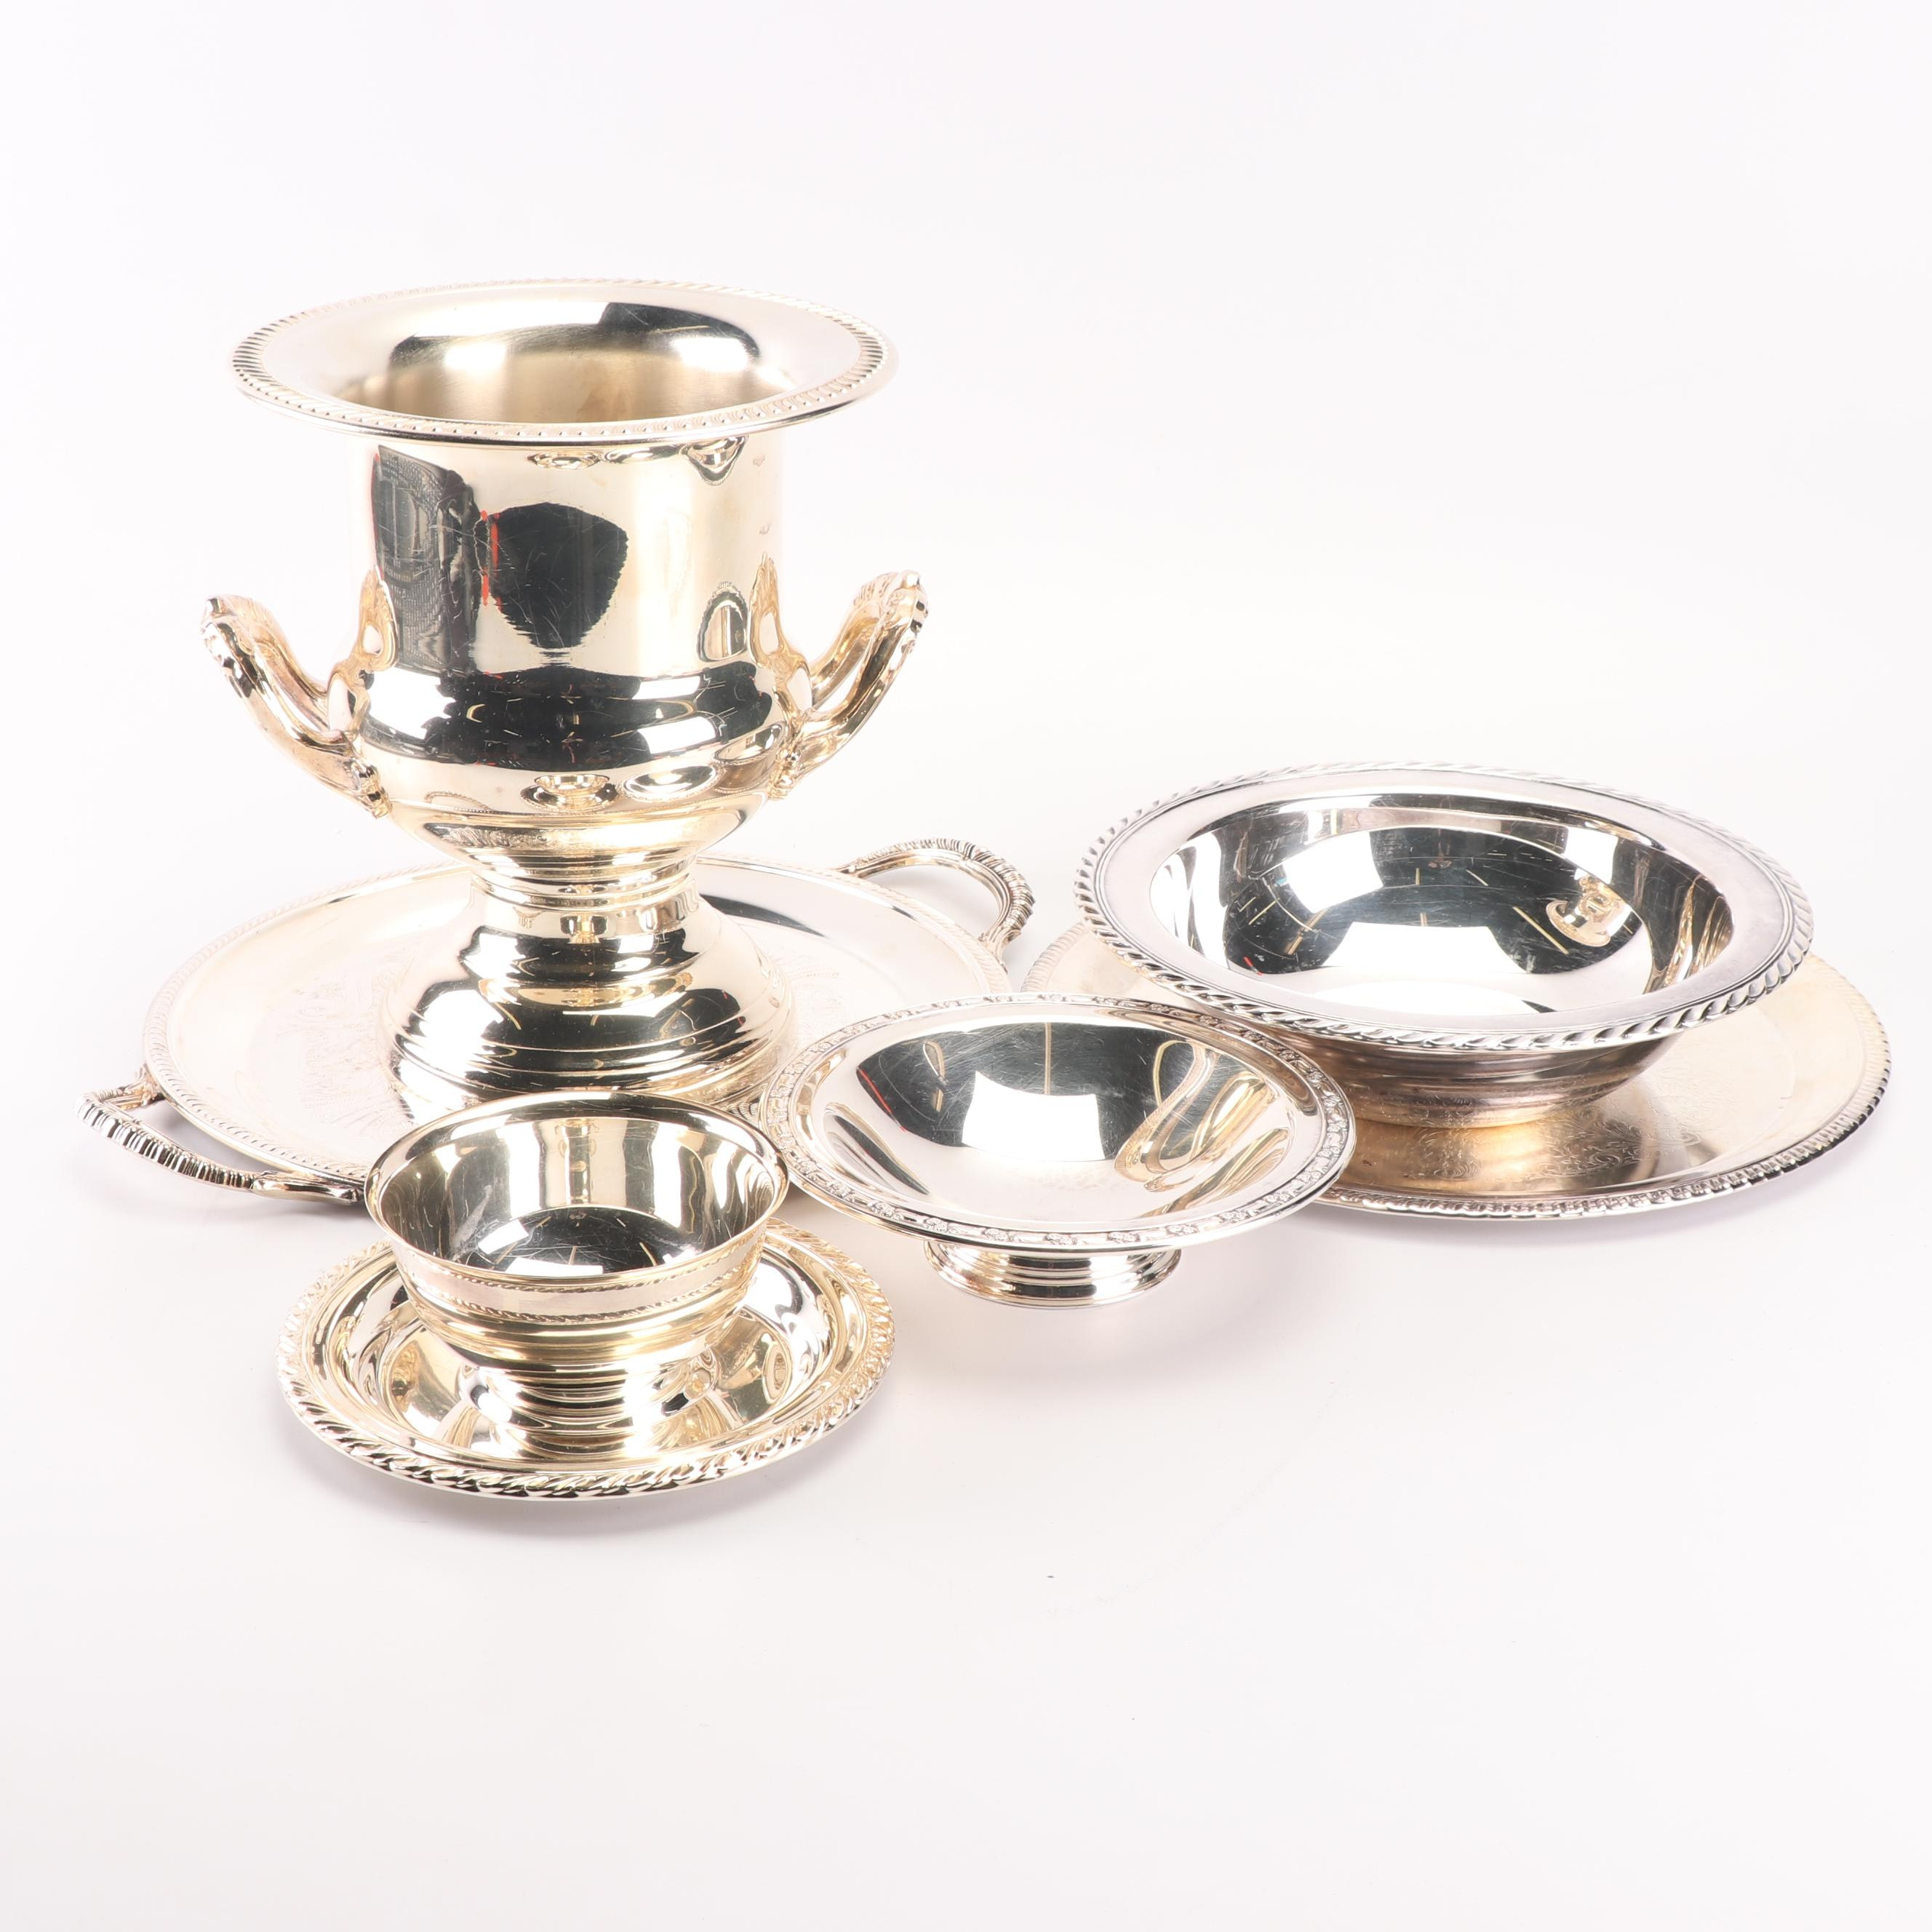 Leonard Champagne Bucket with Other Silver Plate Serveware, Late 20th Century